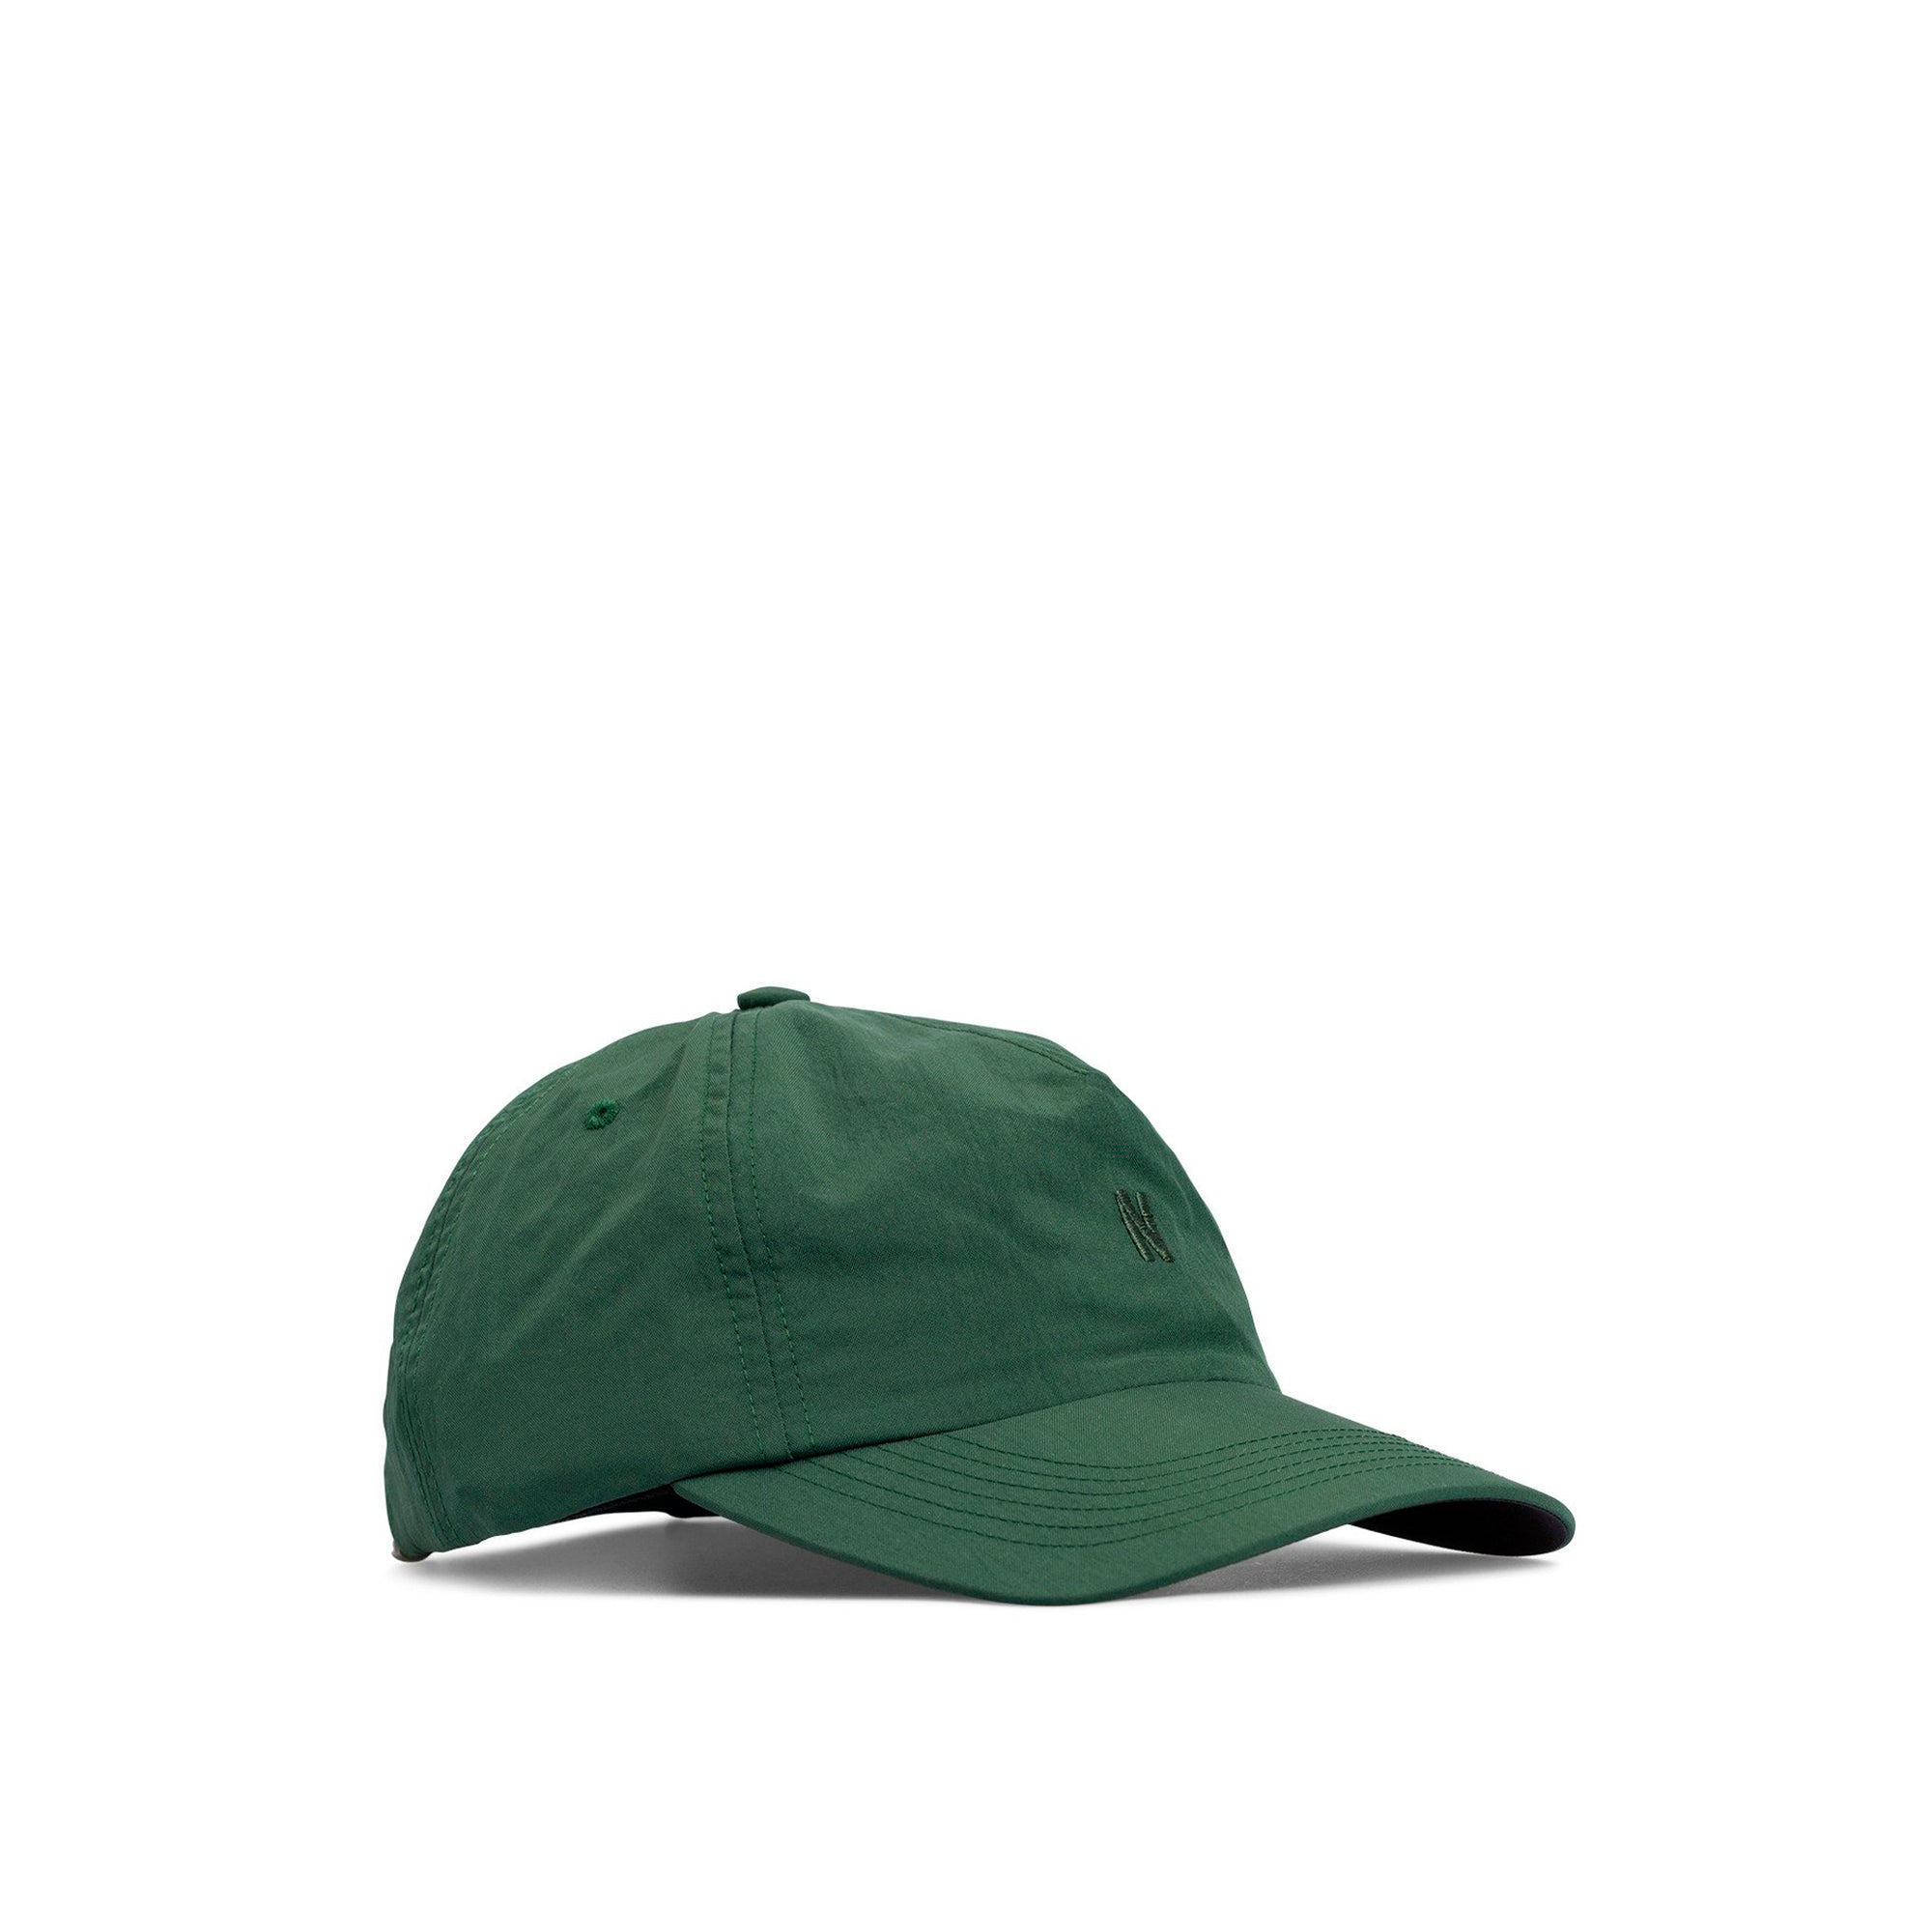 Norse Projects Econyl Sports Cap: Dartmouth Green - The Union Project